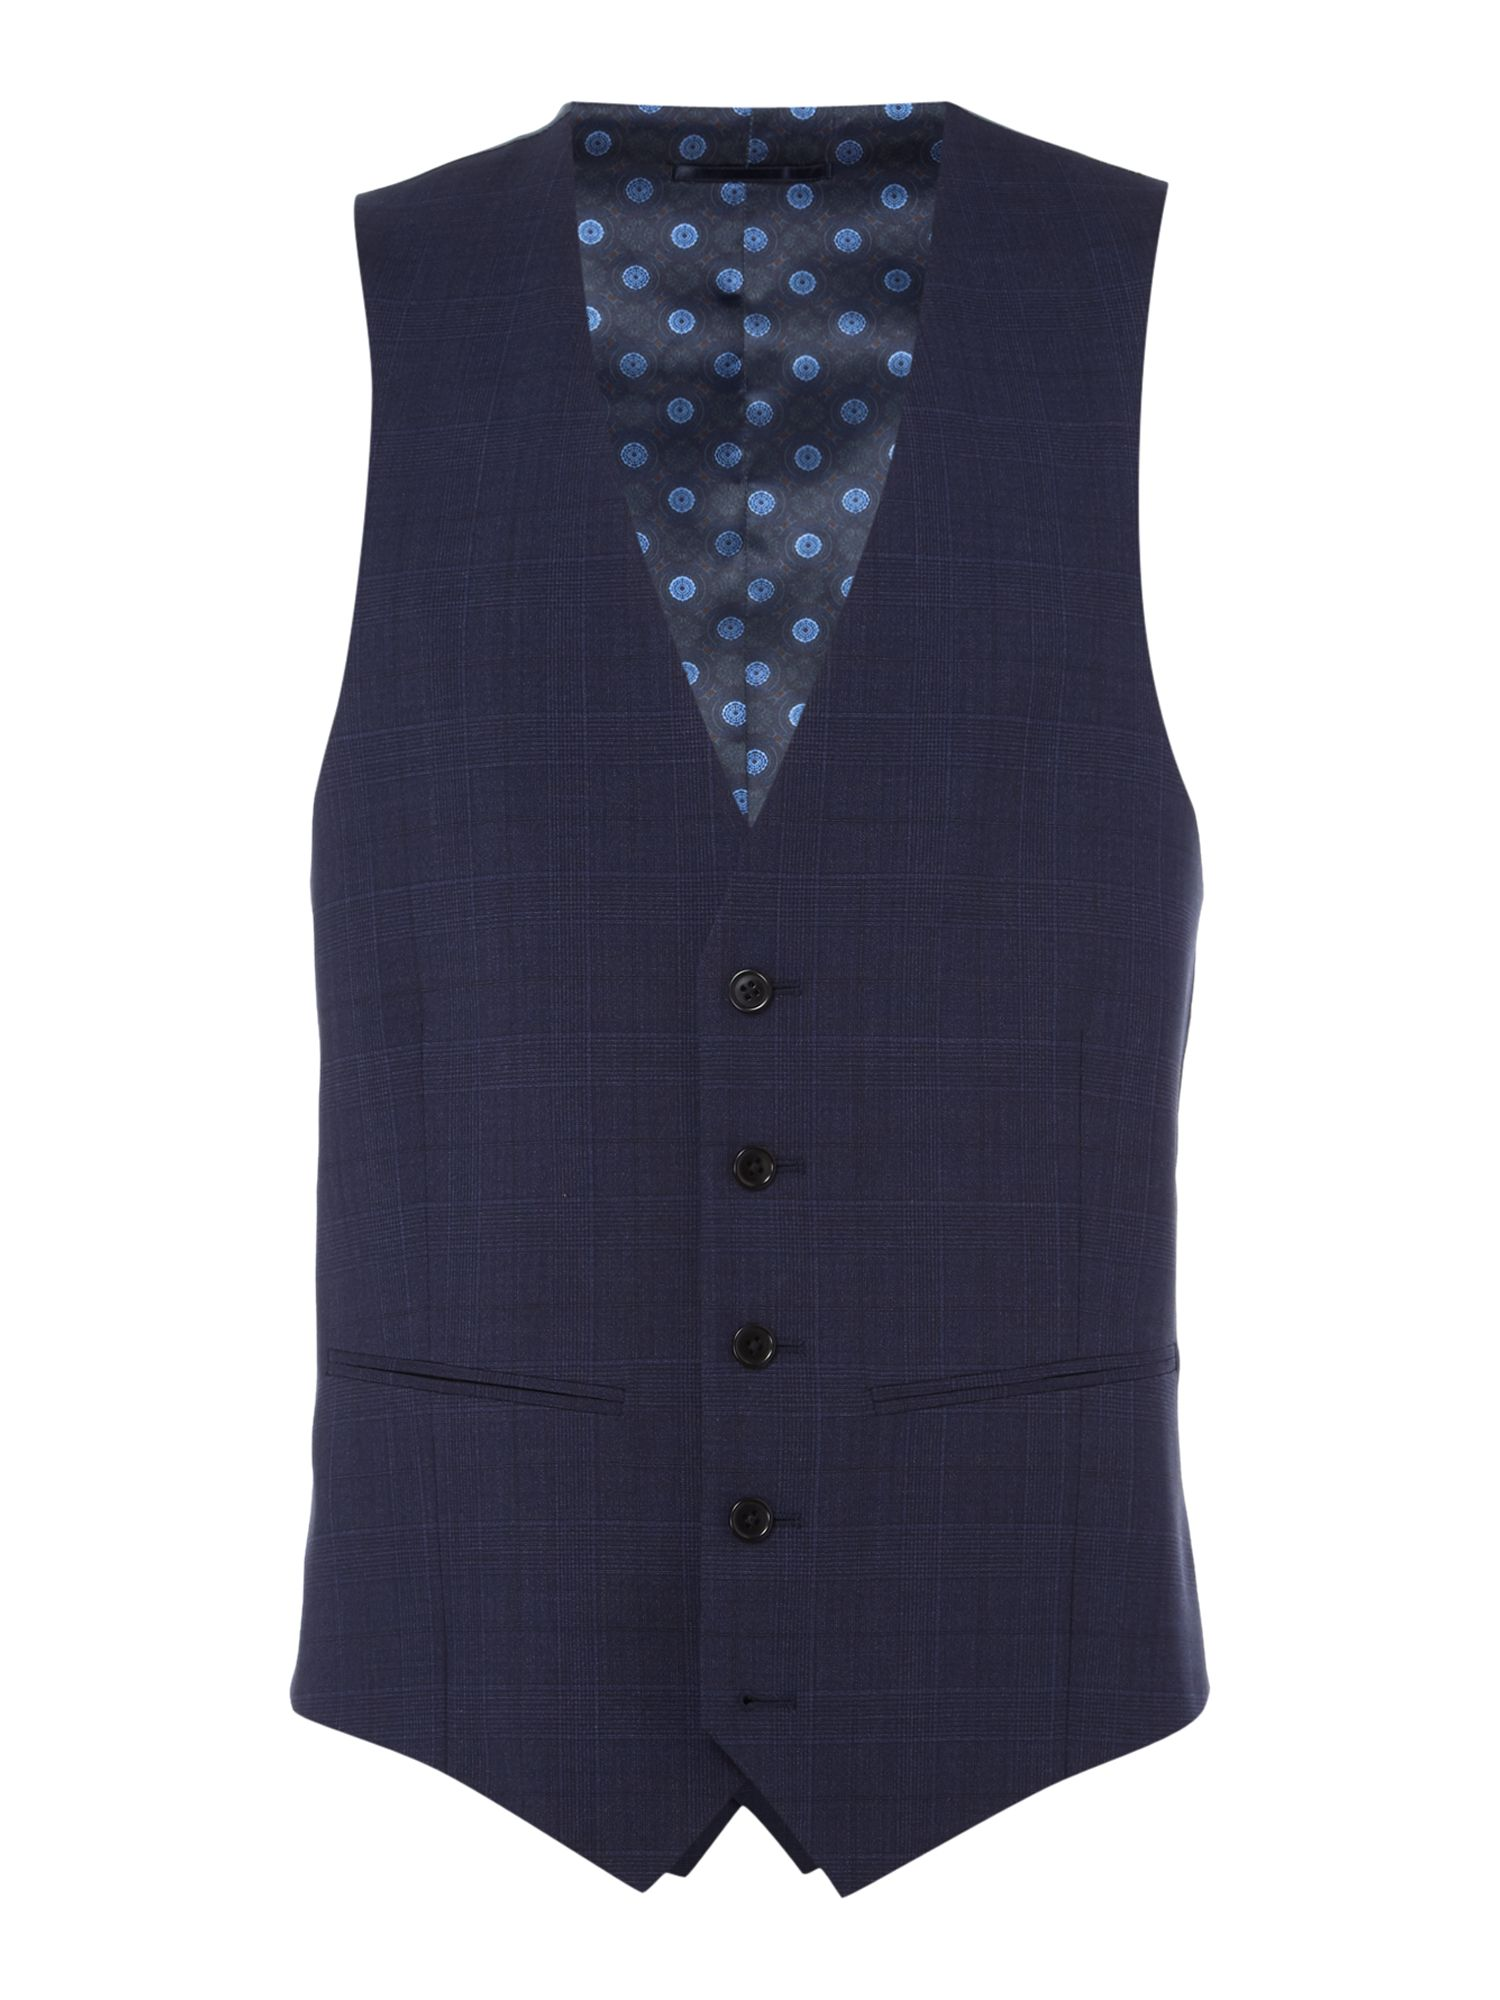 Men's Turner & Sanderson Chatsworth Tonal Checked Suit Waistcoat, Dark Blue